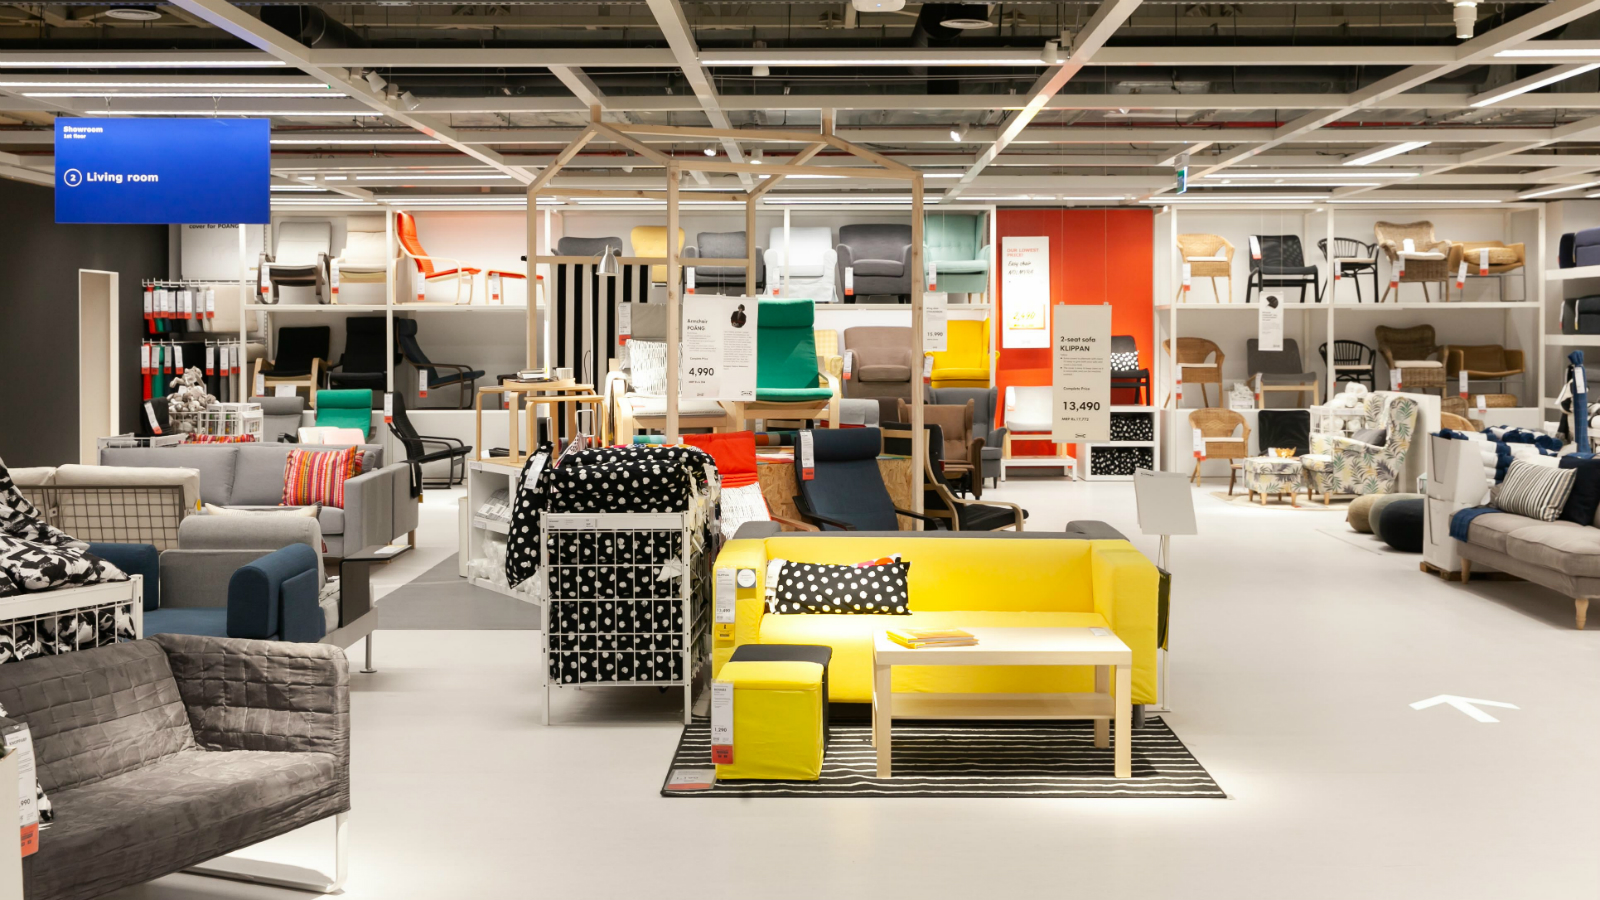 A Guide To Shopping At IKEAu0027s First Store In India